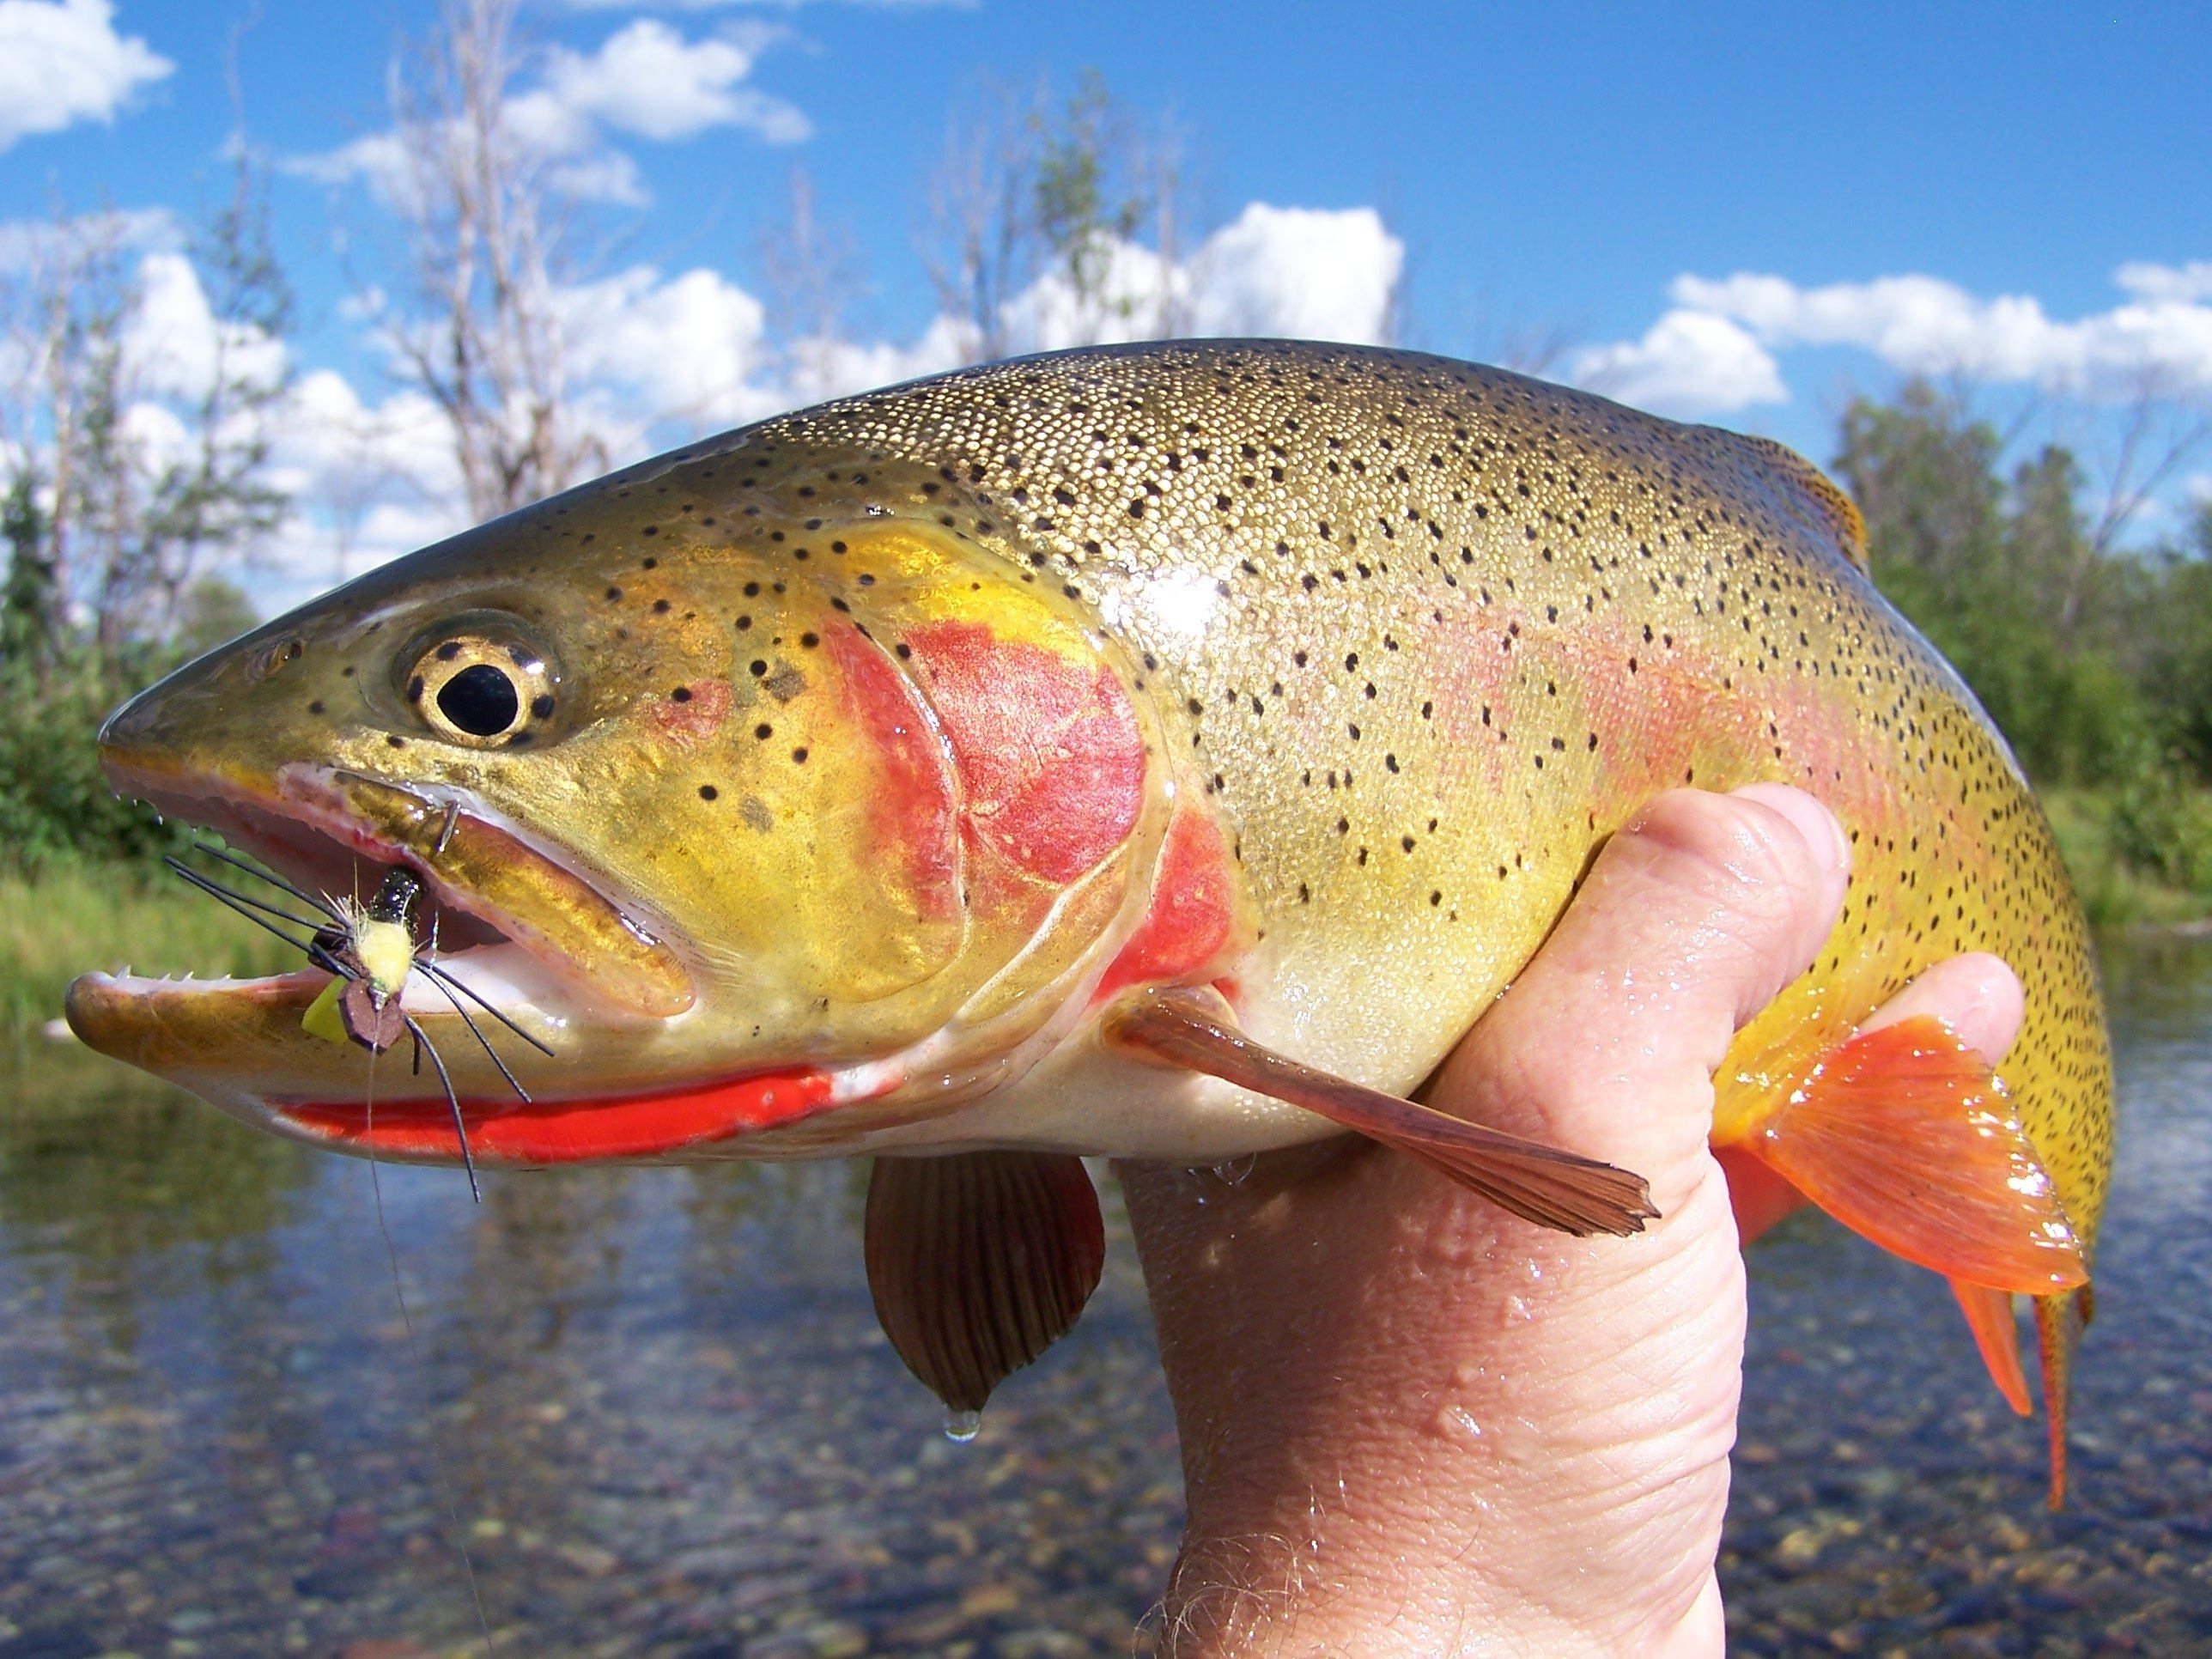 Crescent H ranch Cutthroat trout and Fly